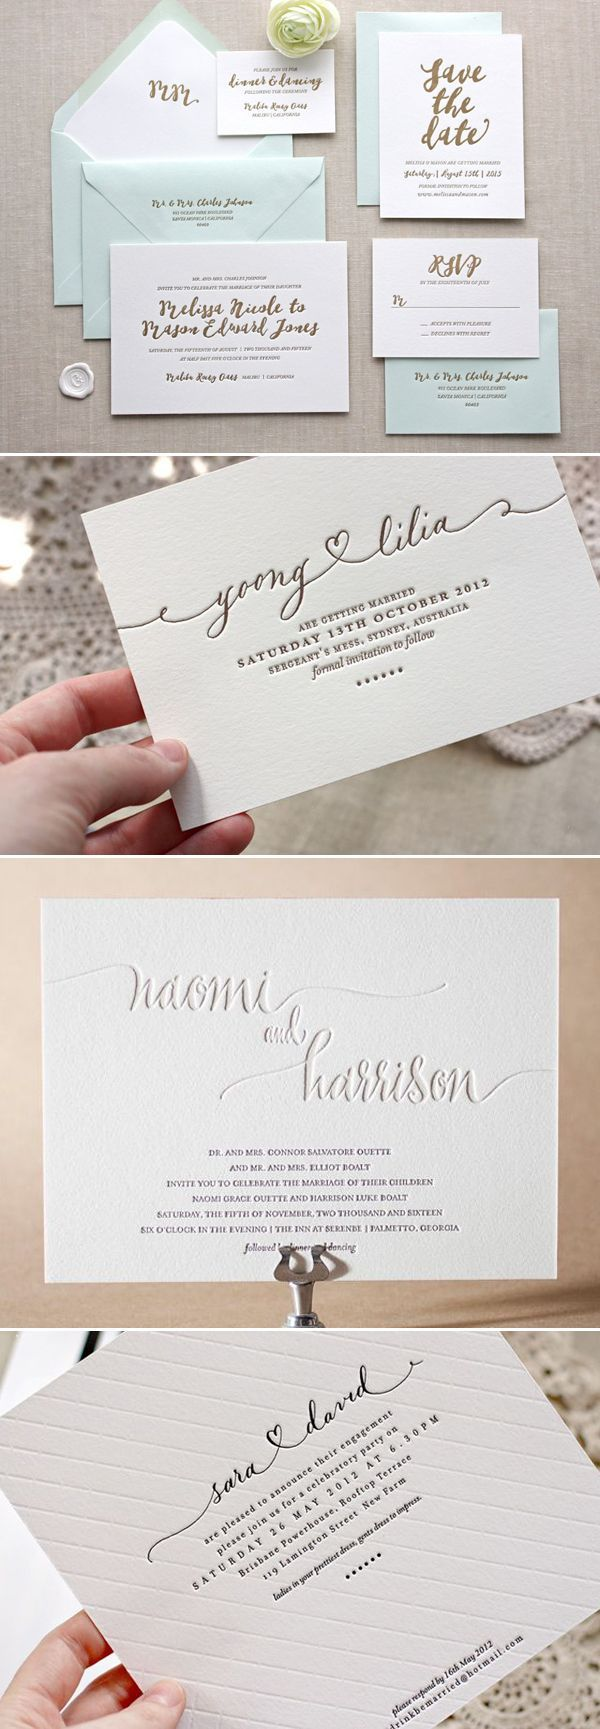 30 Creative Invitation Ideas for Minimalist Couples